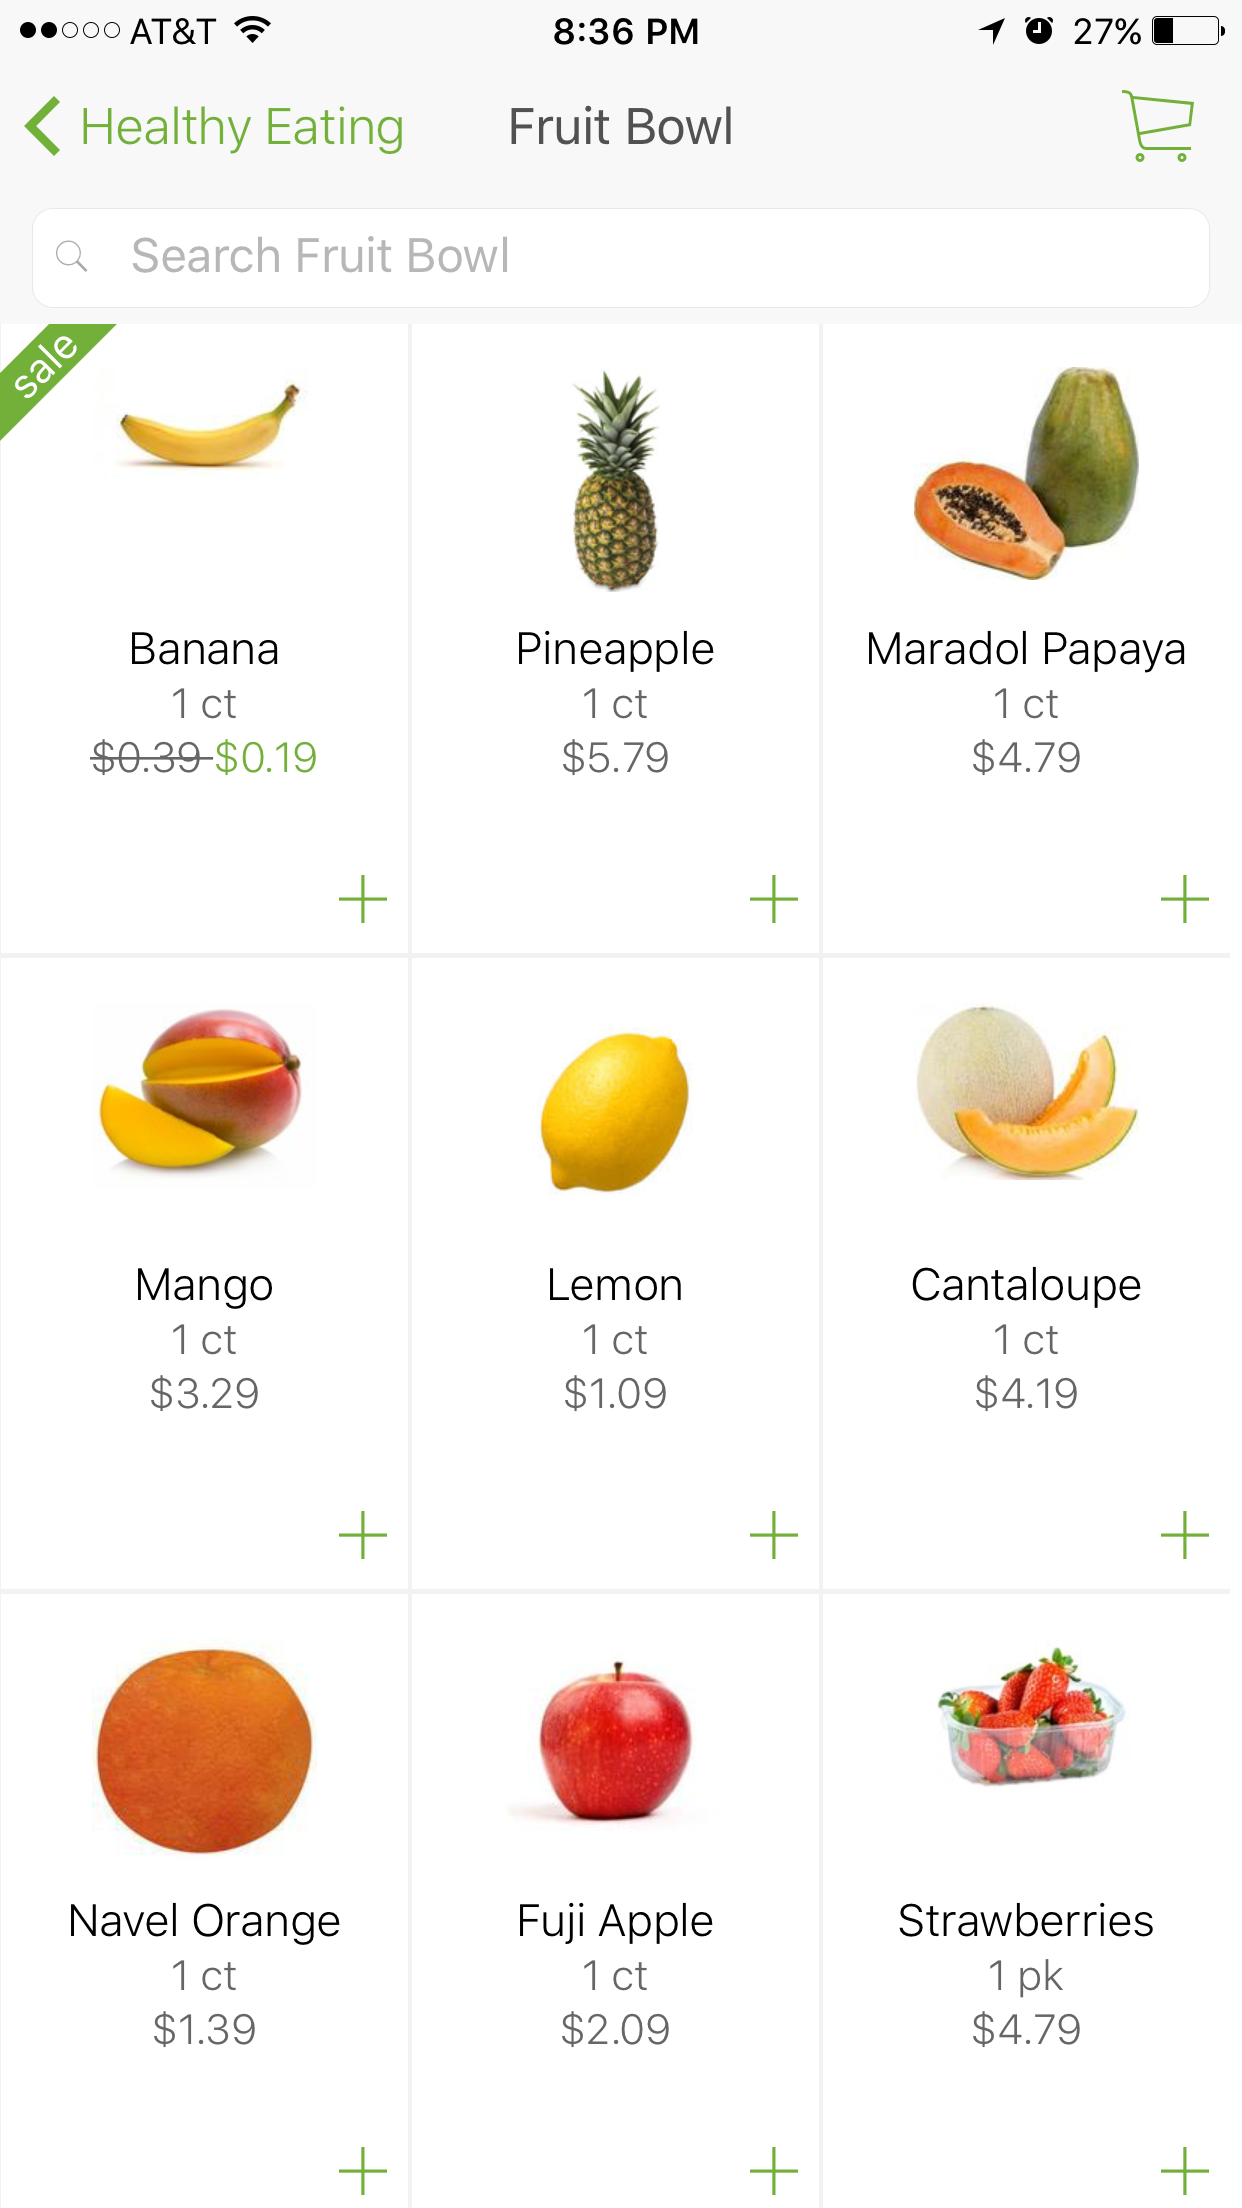 Choosing healthy eating at shipt app for Shipt Grocery Delivery Service by Angela Roberts